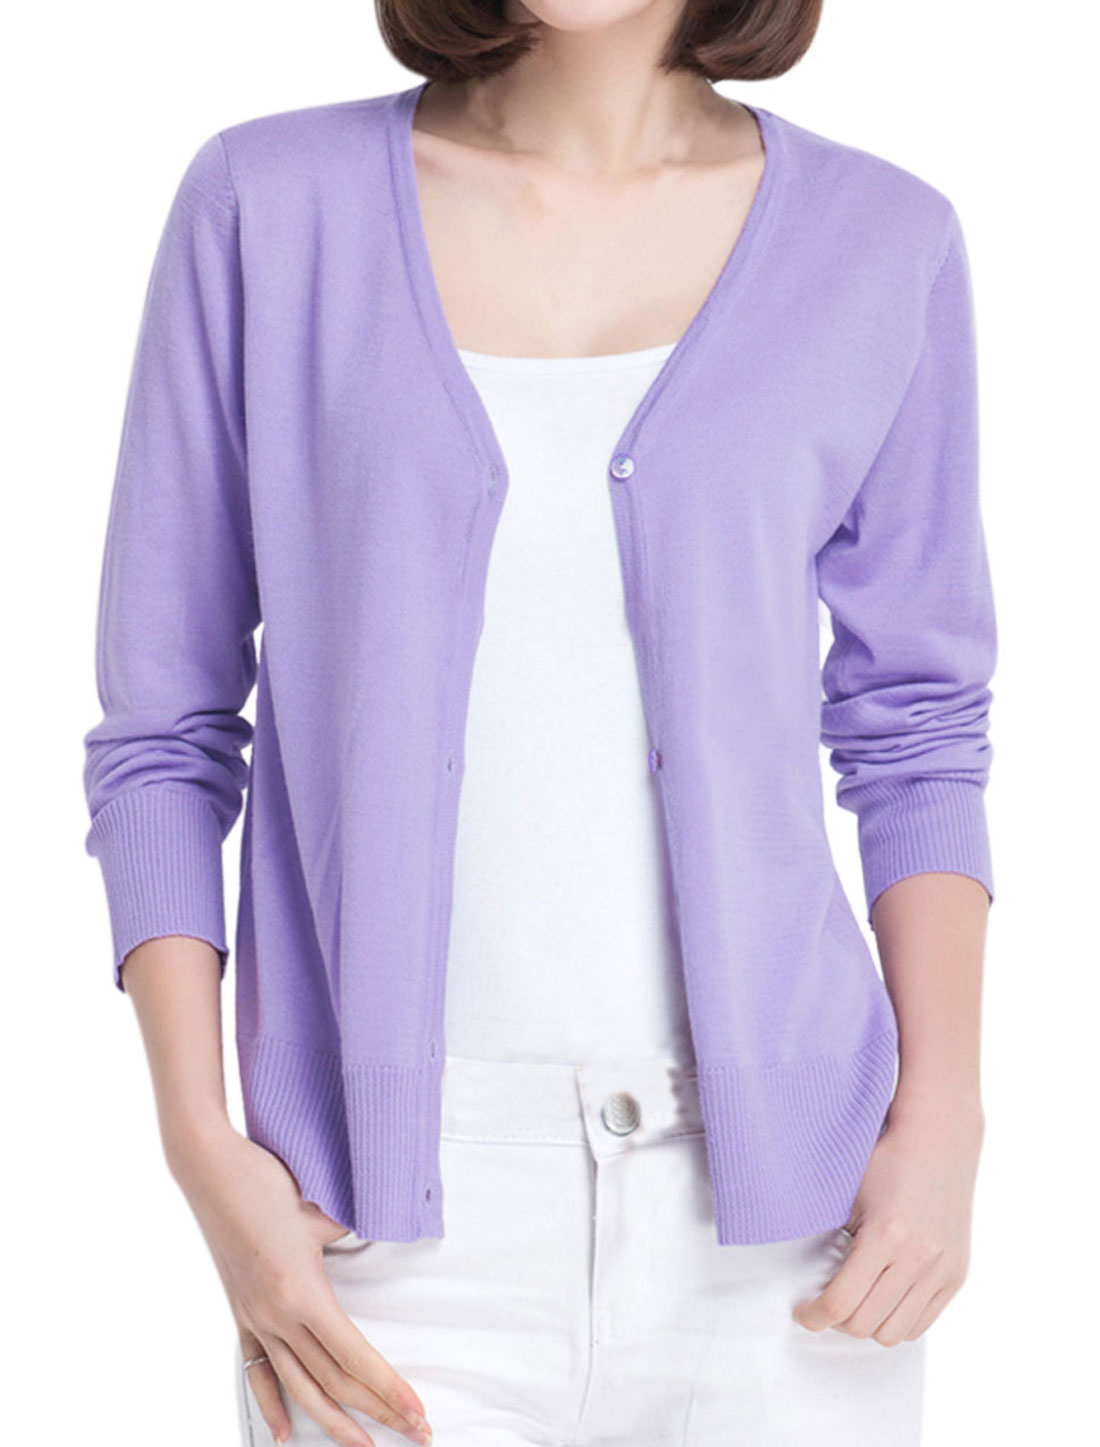 Lady Button Closure Front Stylish Casual Knit Cardigan Lavender S